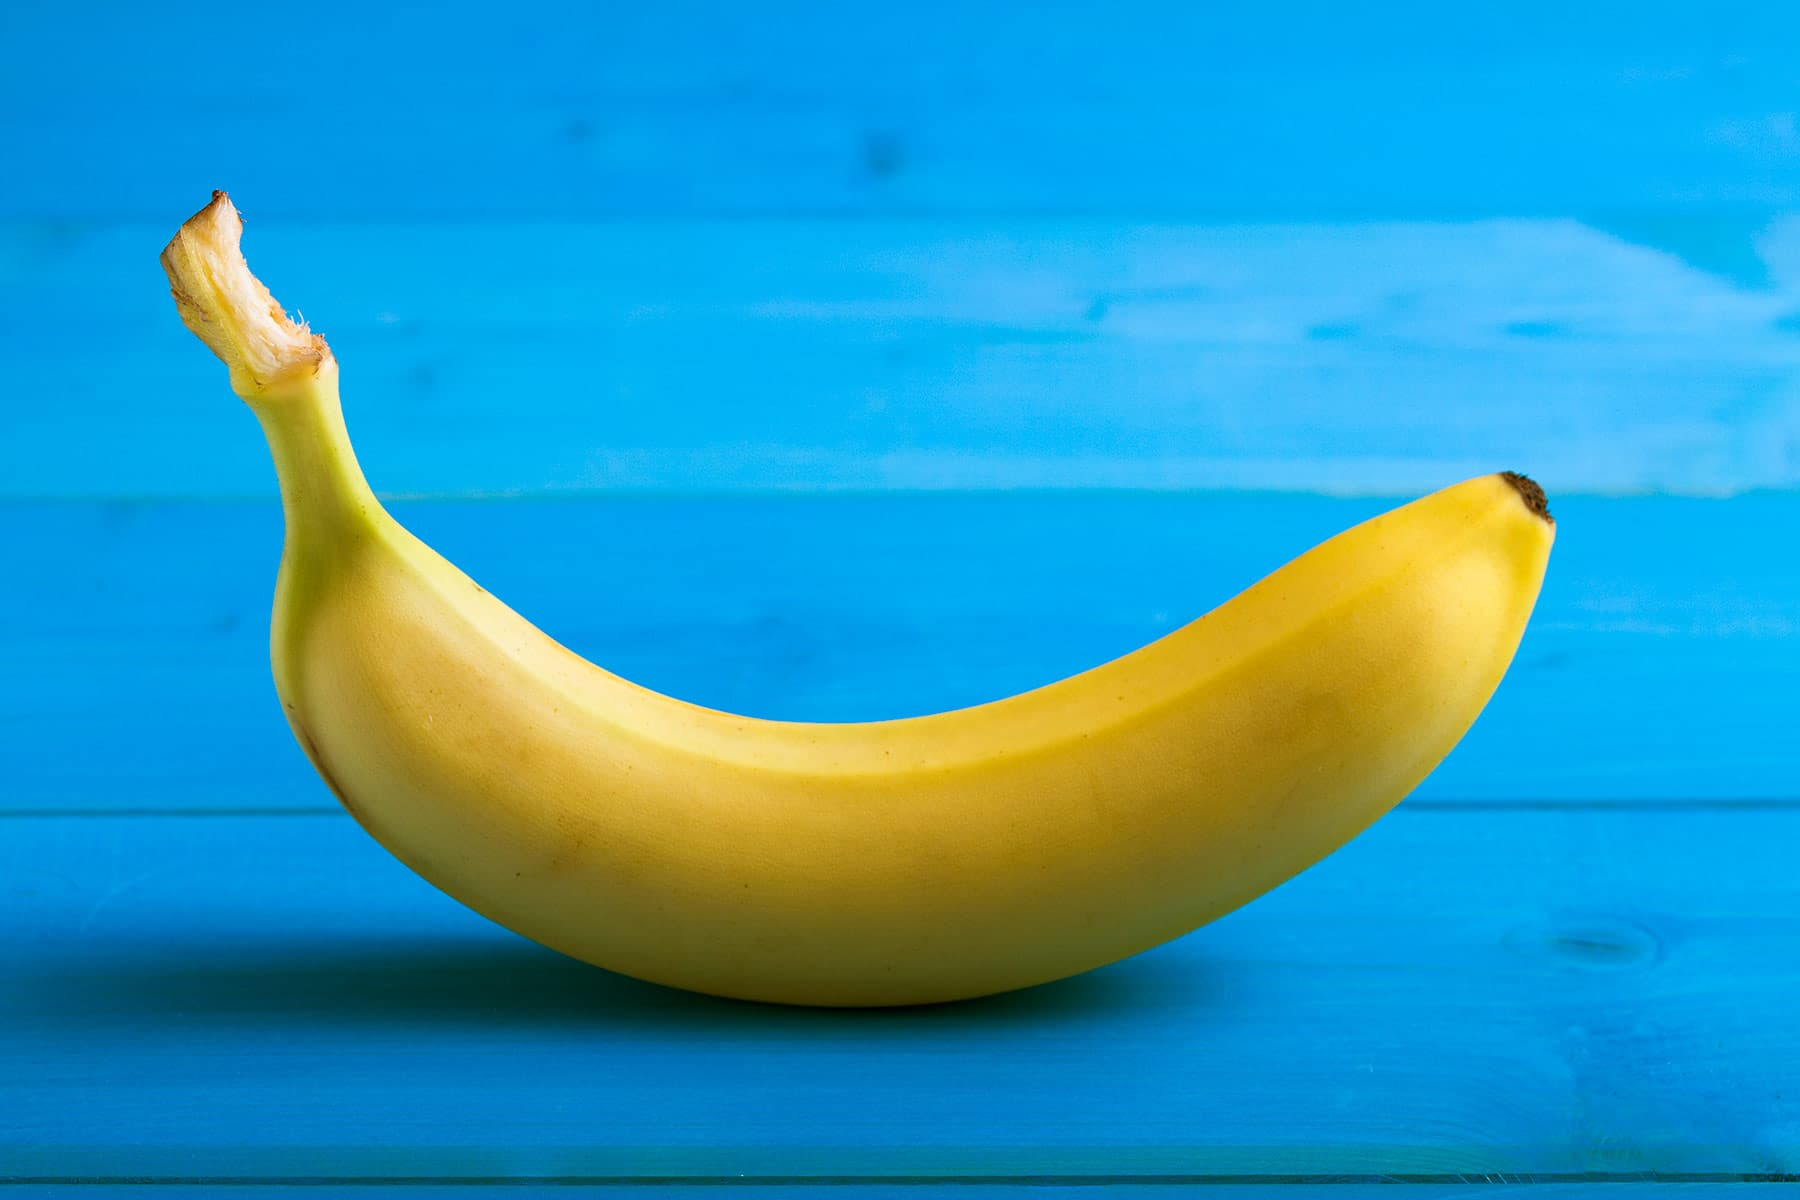 12 Foods That Have More Potassium Than a Banana